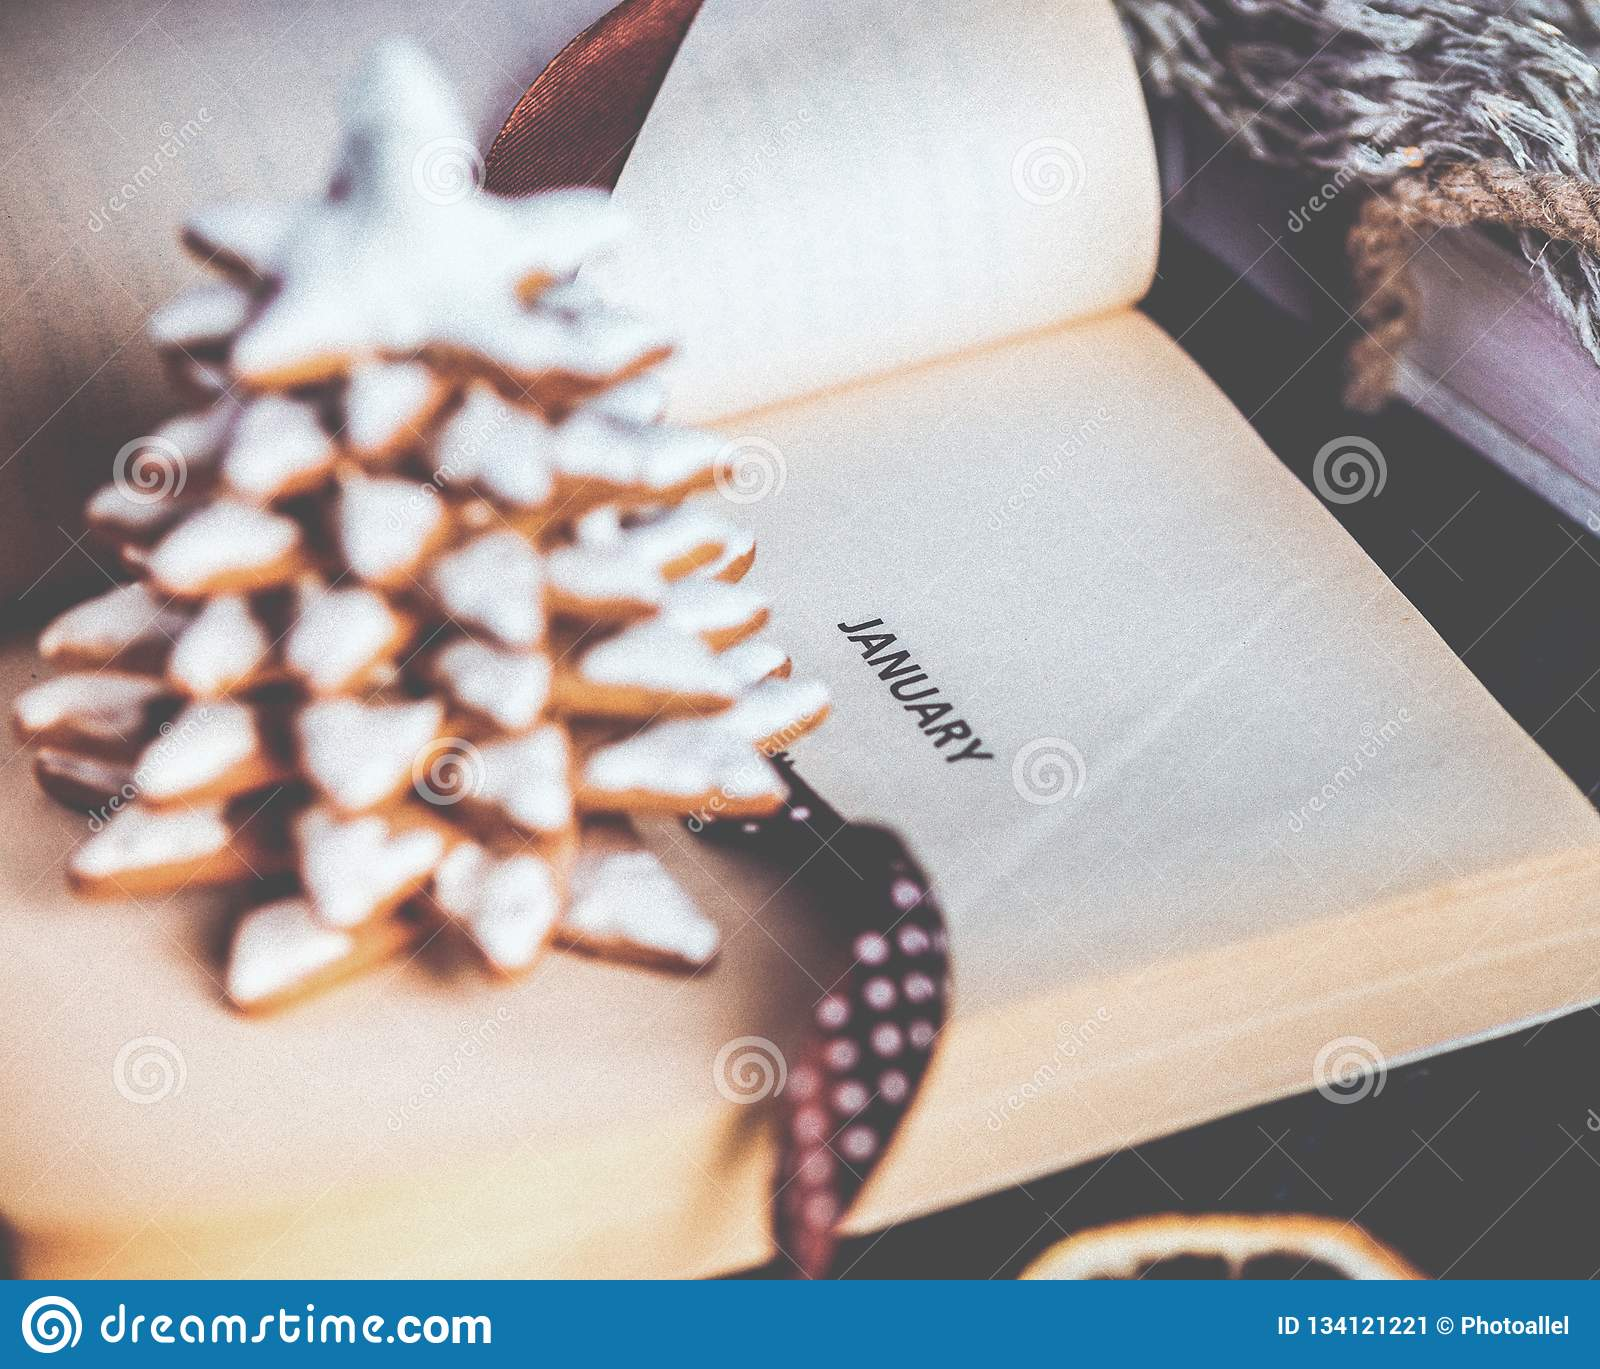 Gingerbread Christmas Tree Cookies Opened Book With The Inscription